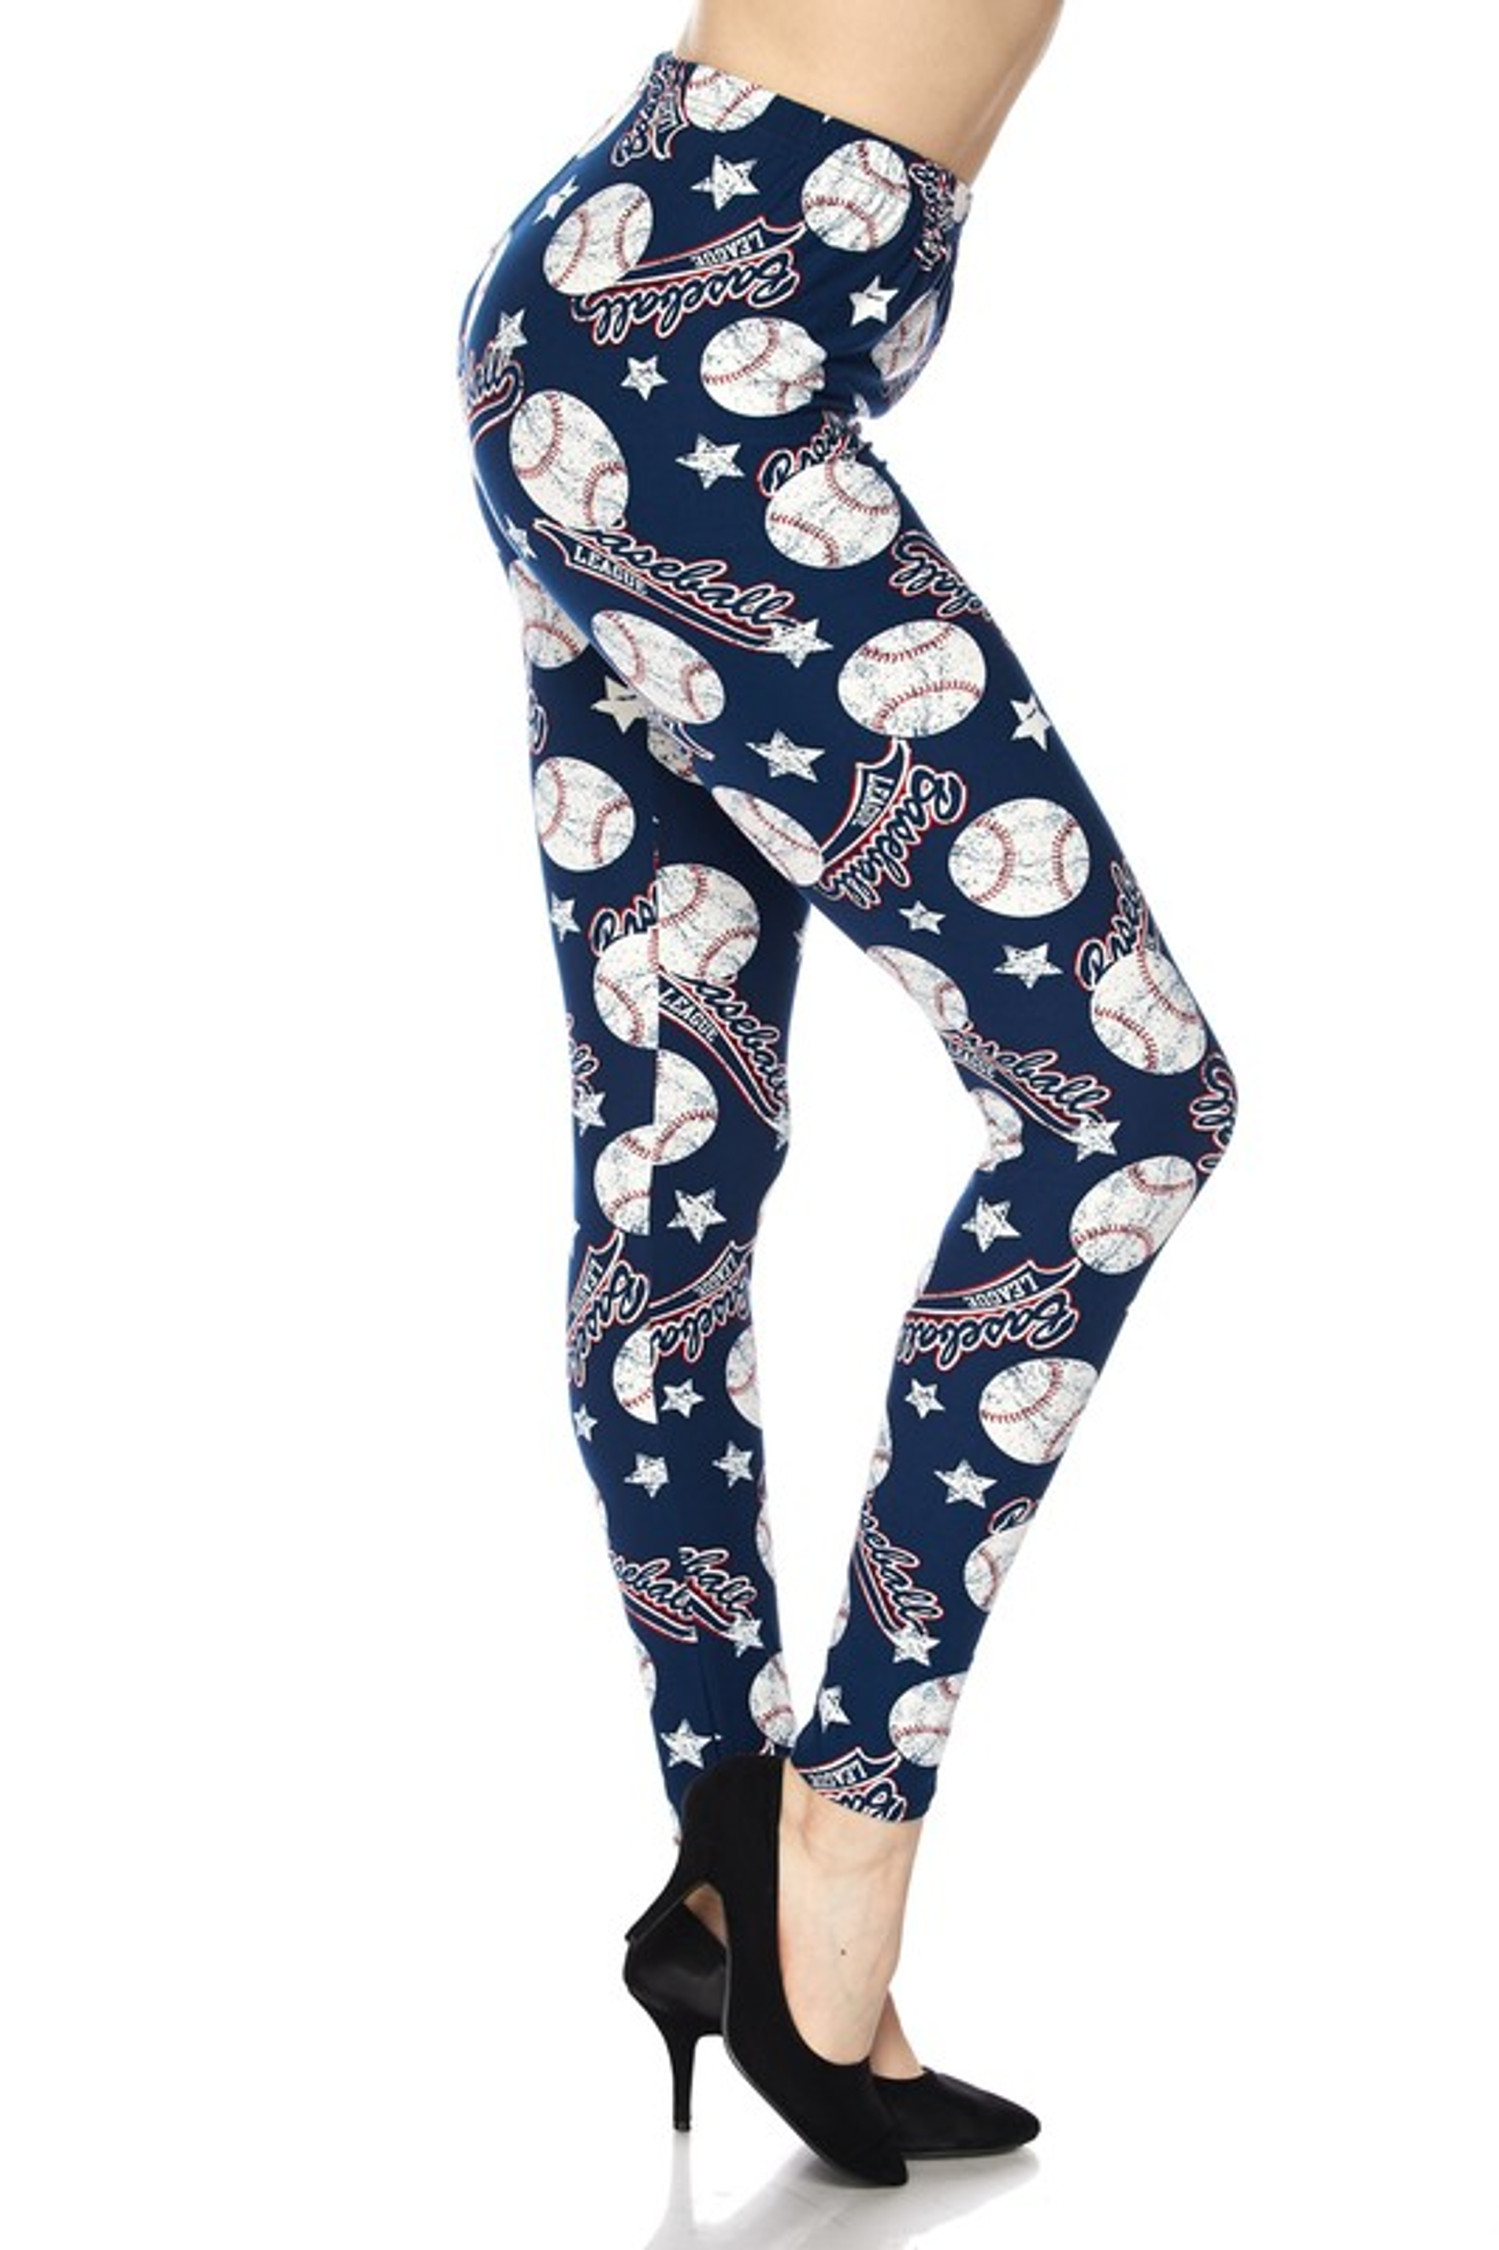 Brushed Major League Baseball Plus Size Leggings - 3X-5X